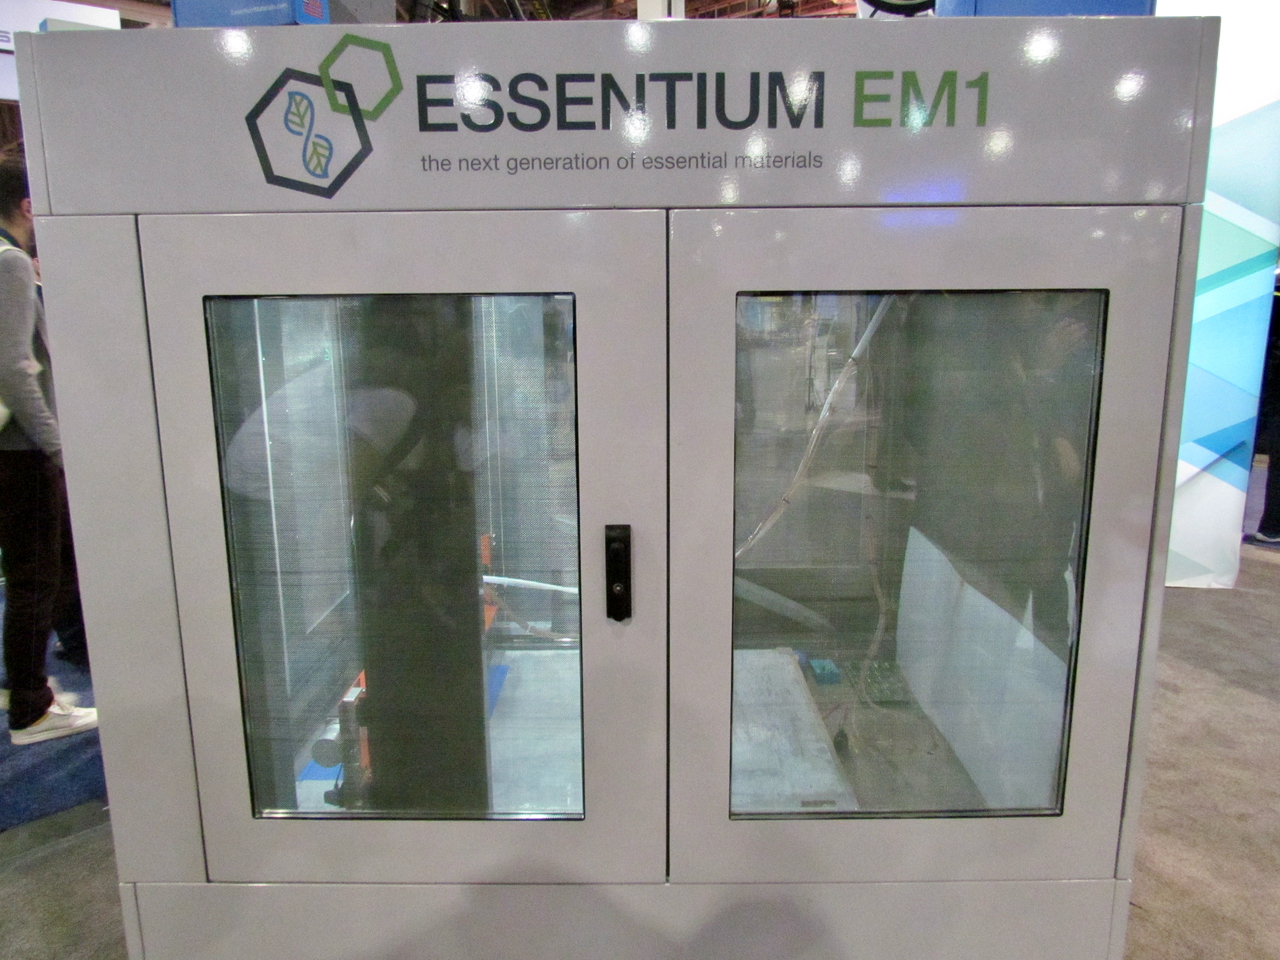 The Essentium EM1, used for development of the electromagnetic 3D printing process